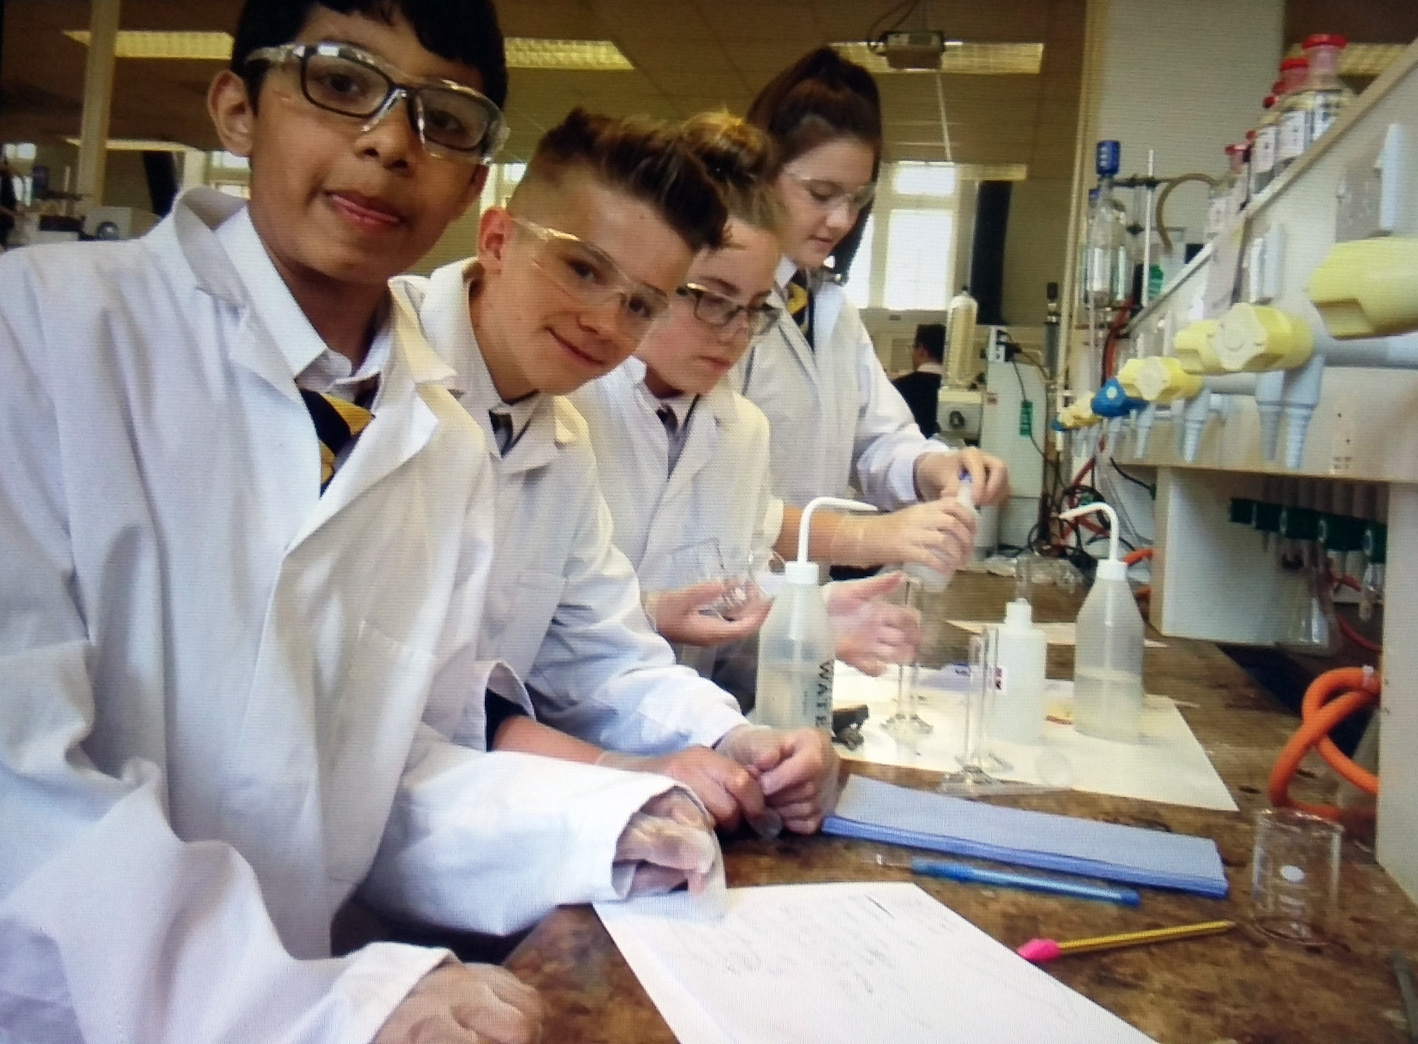 Salters' Festival of Chemistry May 2016